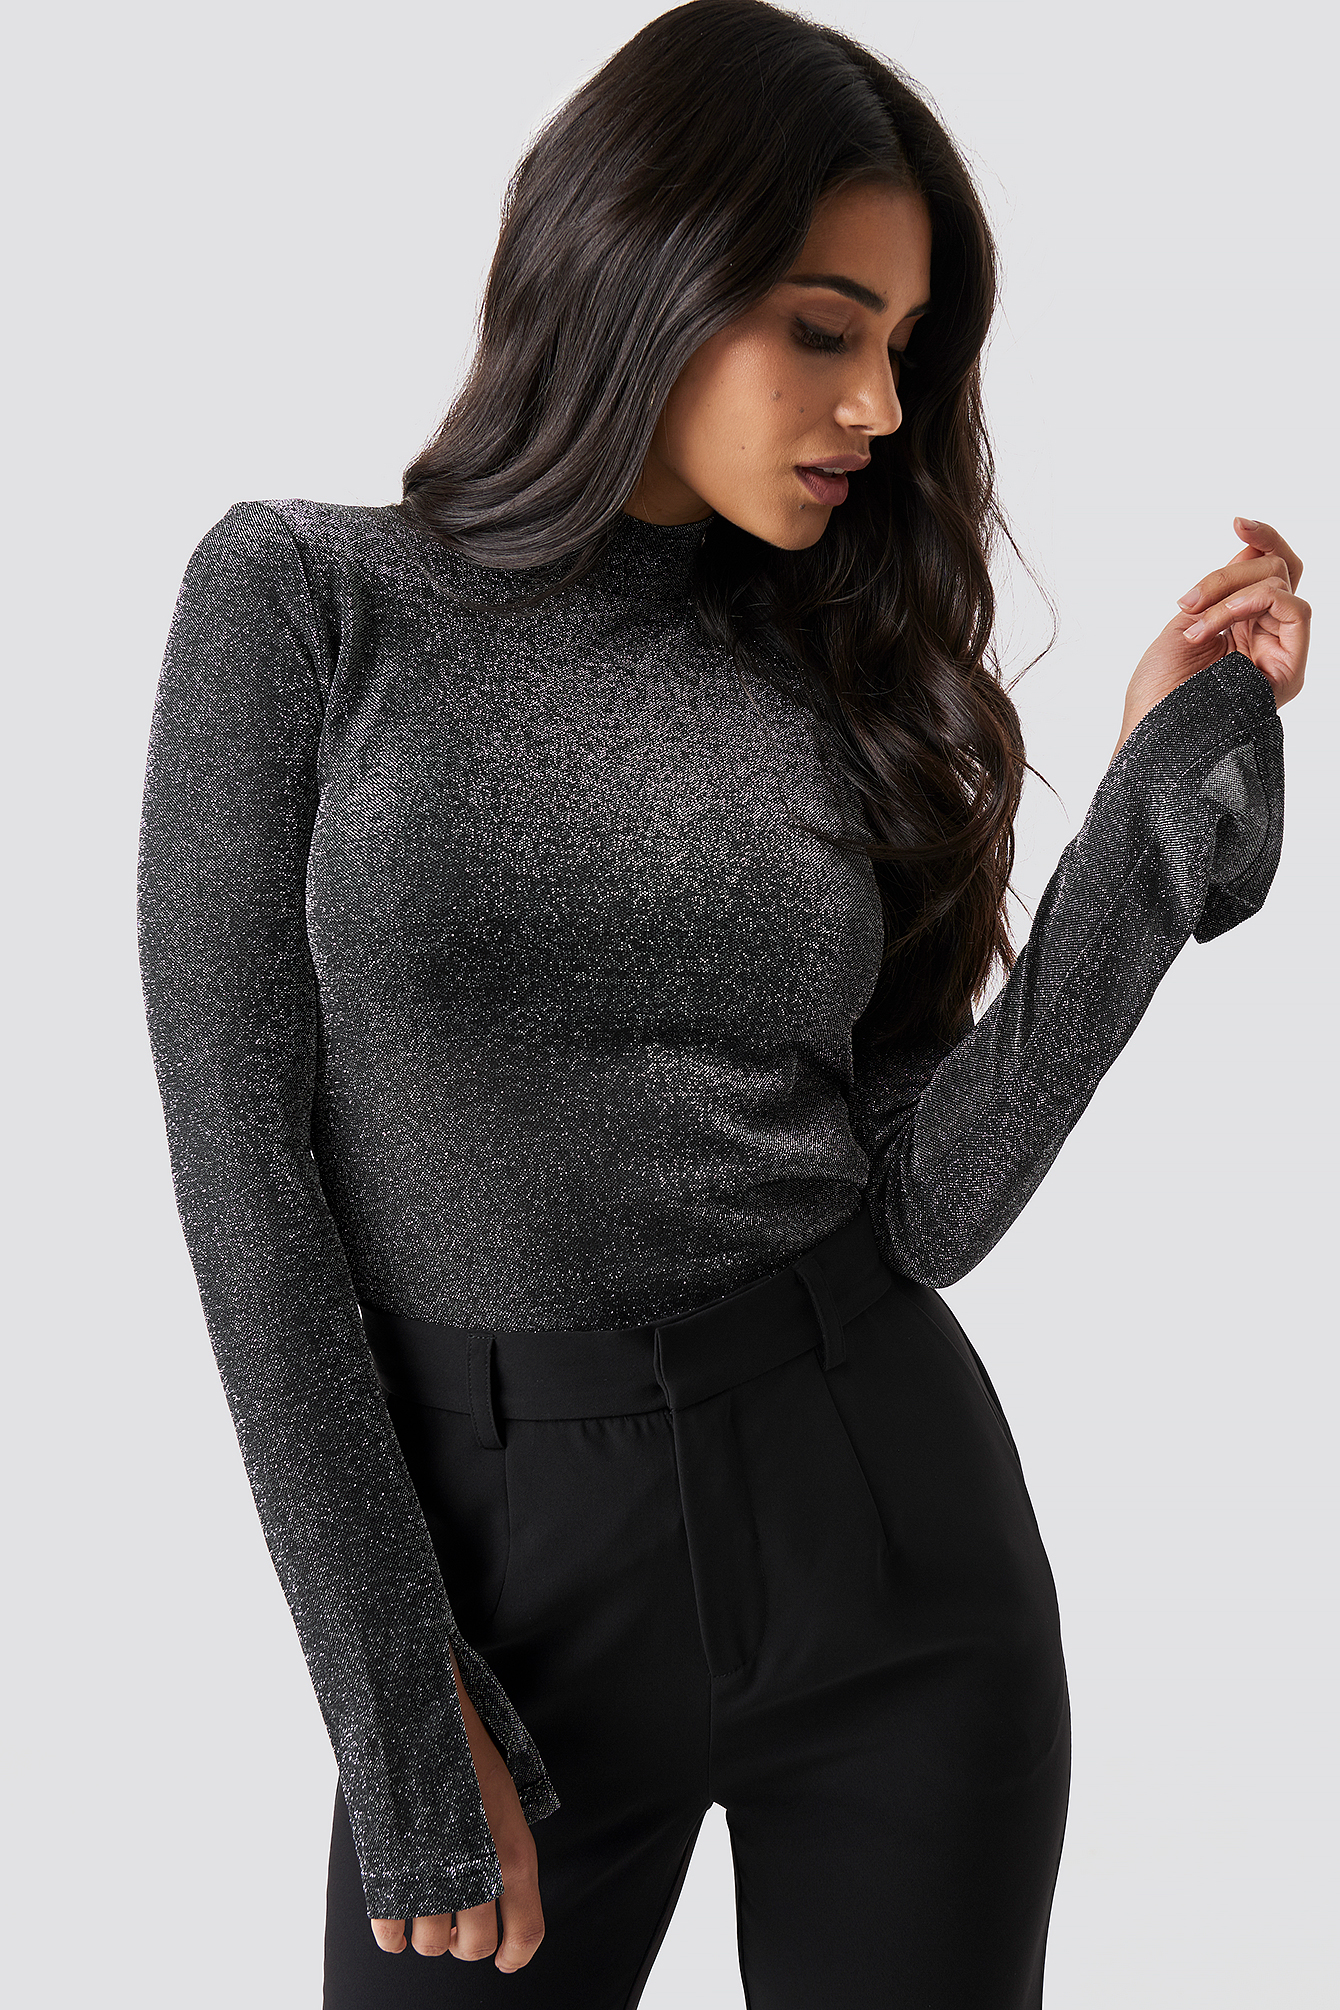 dilara x na-kd -  Sparkly Turtleneck Top - Black